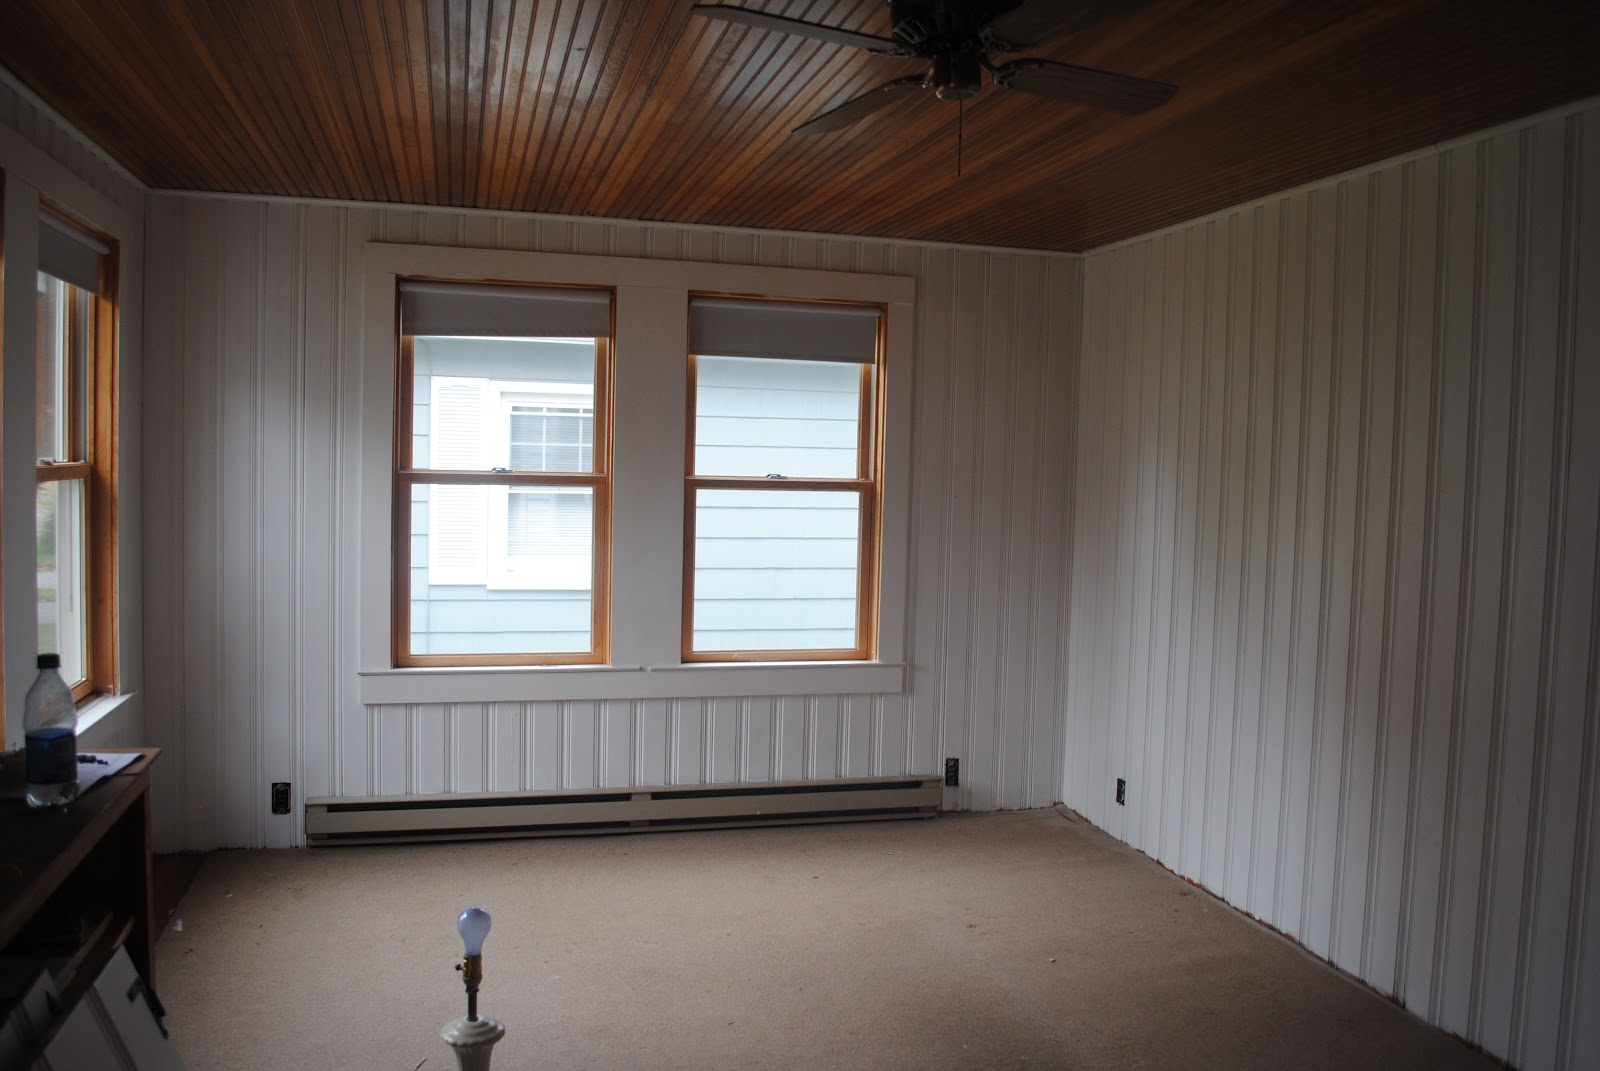 House by Holly: To Paint Knotty Pine or Not Paint Knotty Pine? That is the Question.